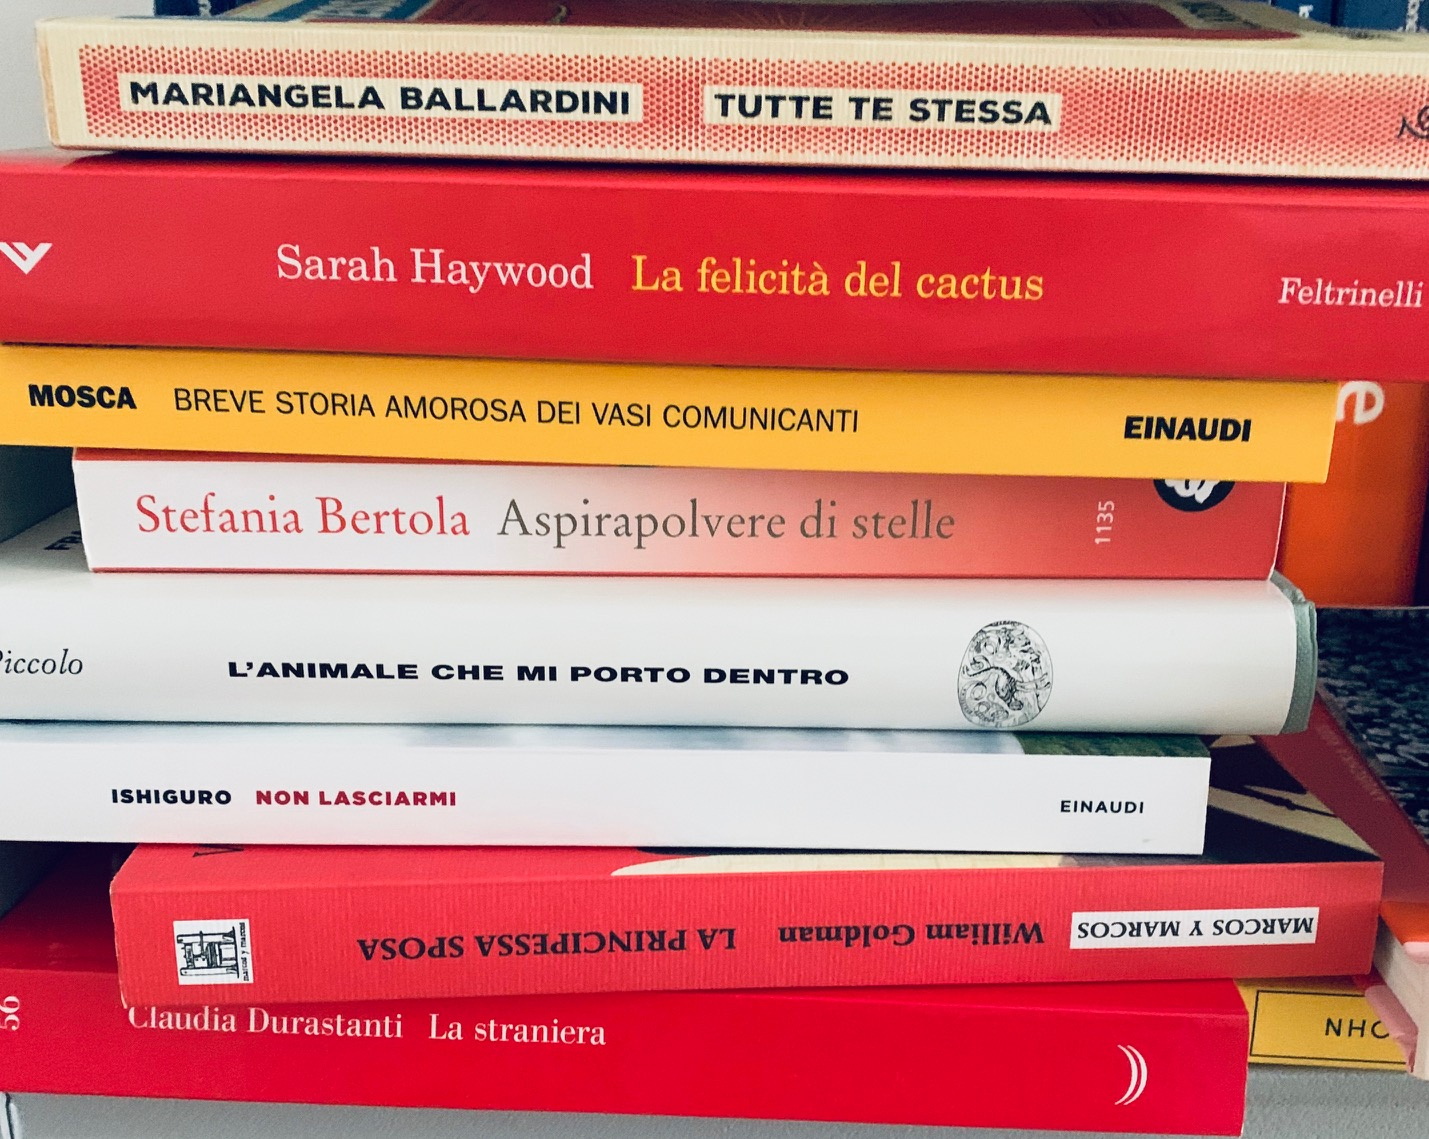 saggi e manuali per l'estate 2019